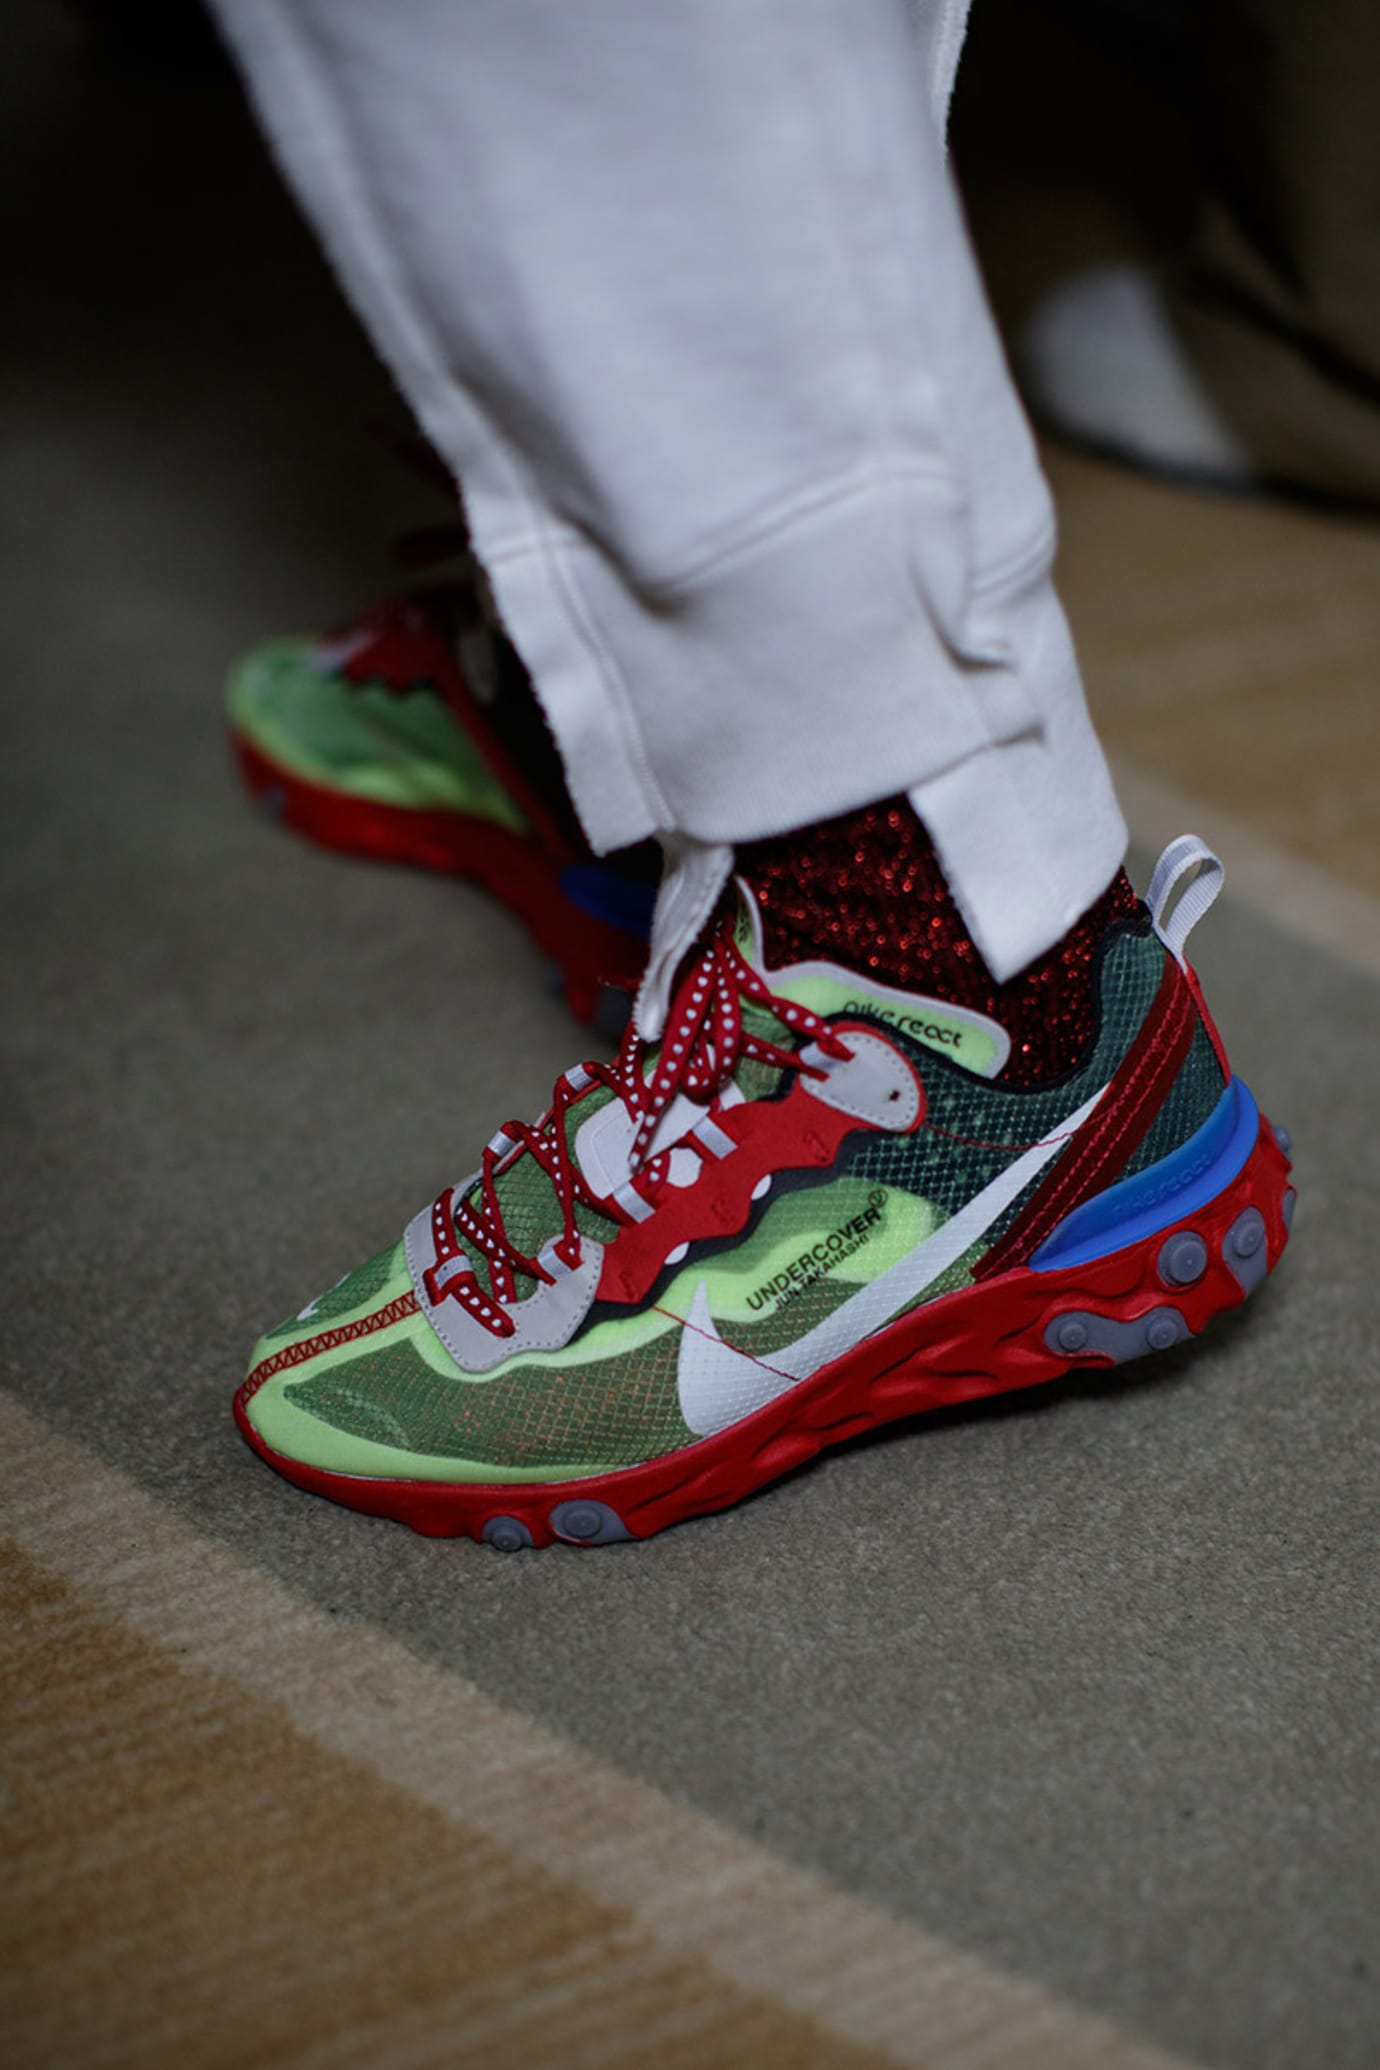 Undercover x Nike React element 87 Red/Volt